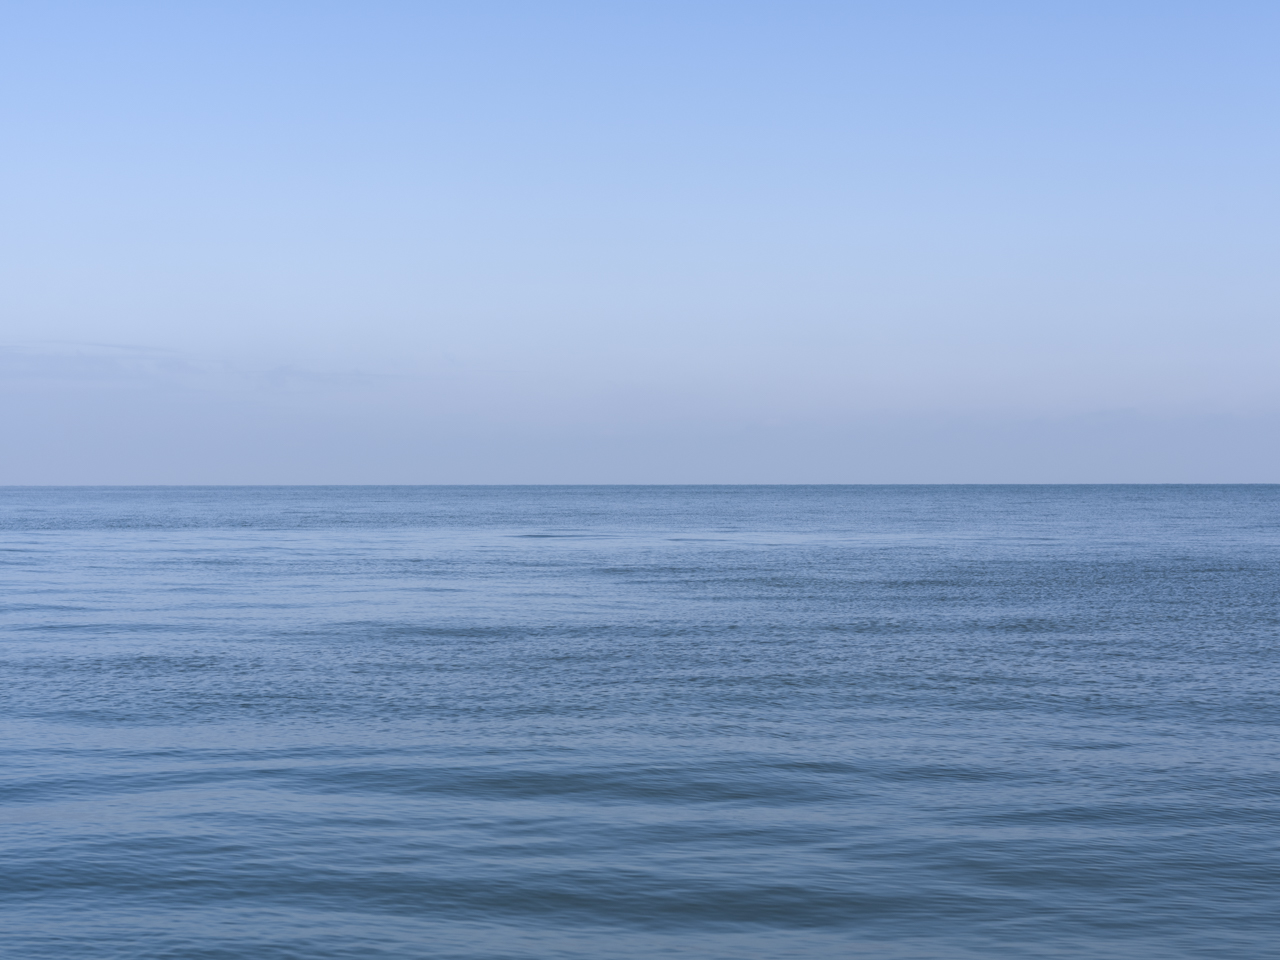 a perfect blue day with a light filled sky and barely any waves on Lake Michigan